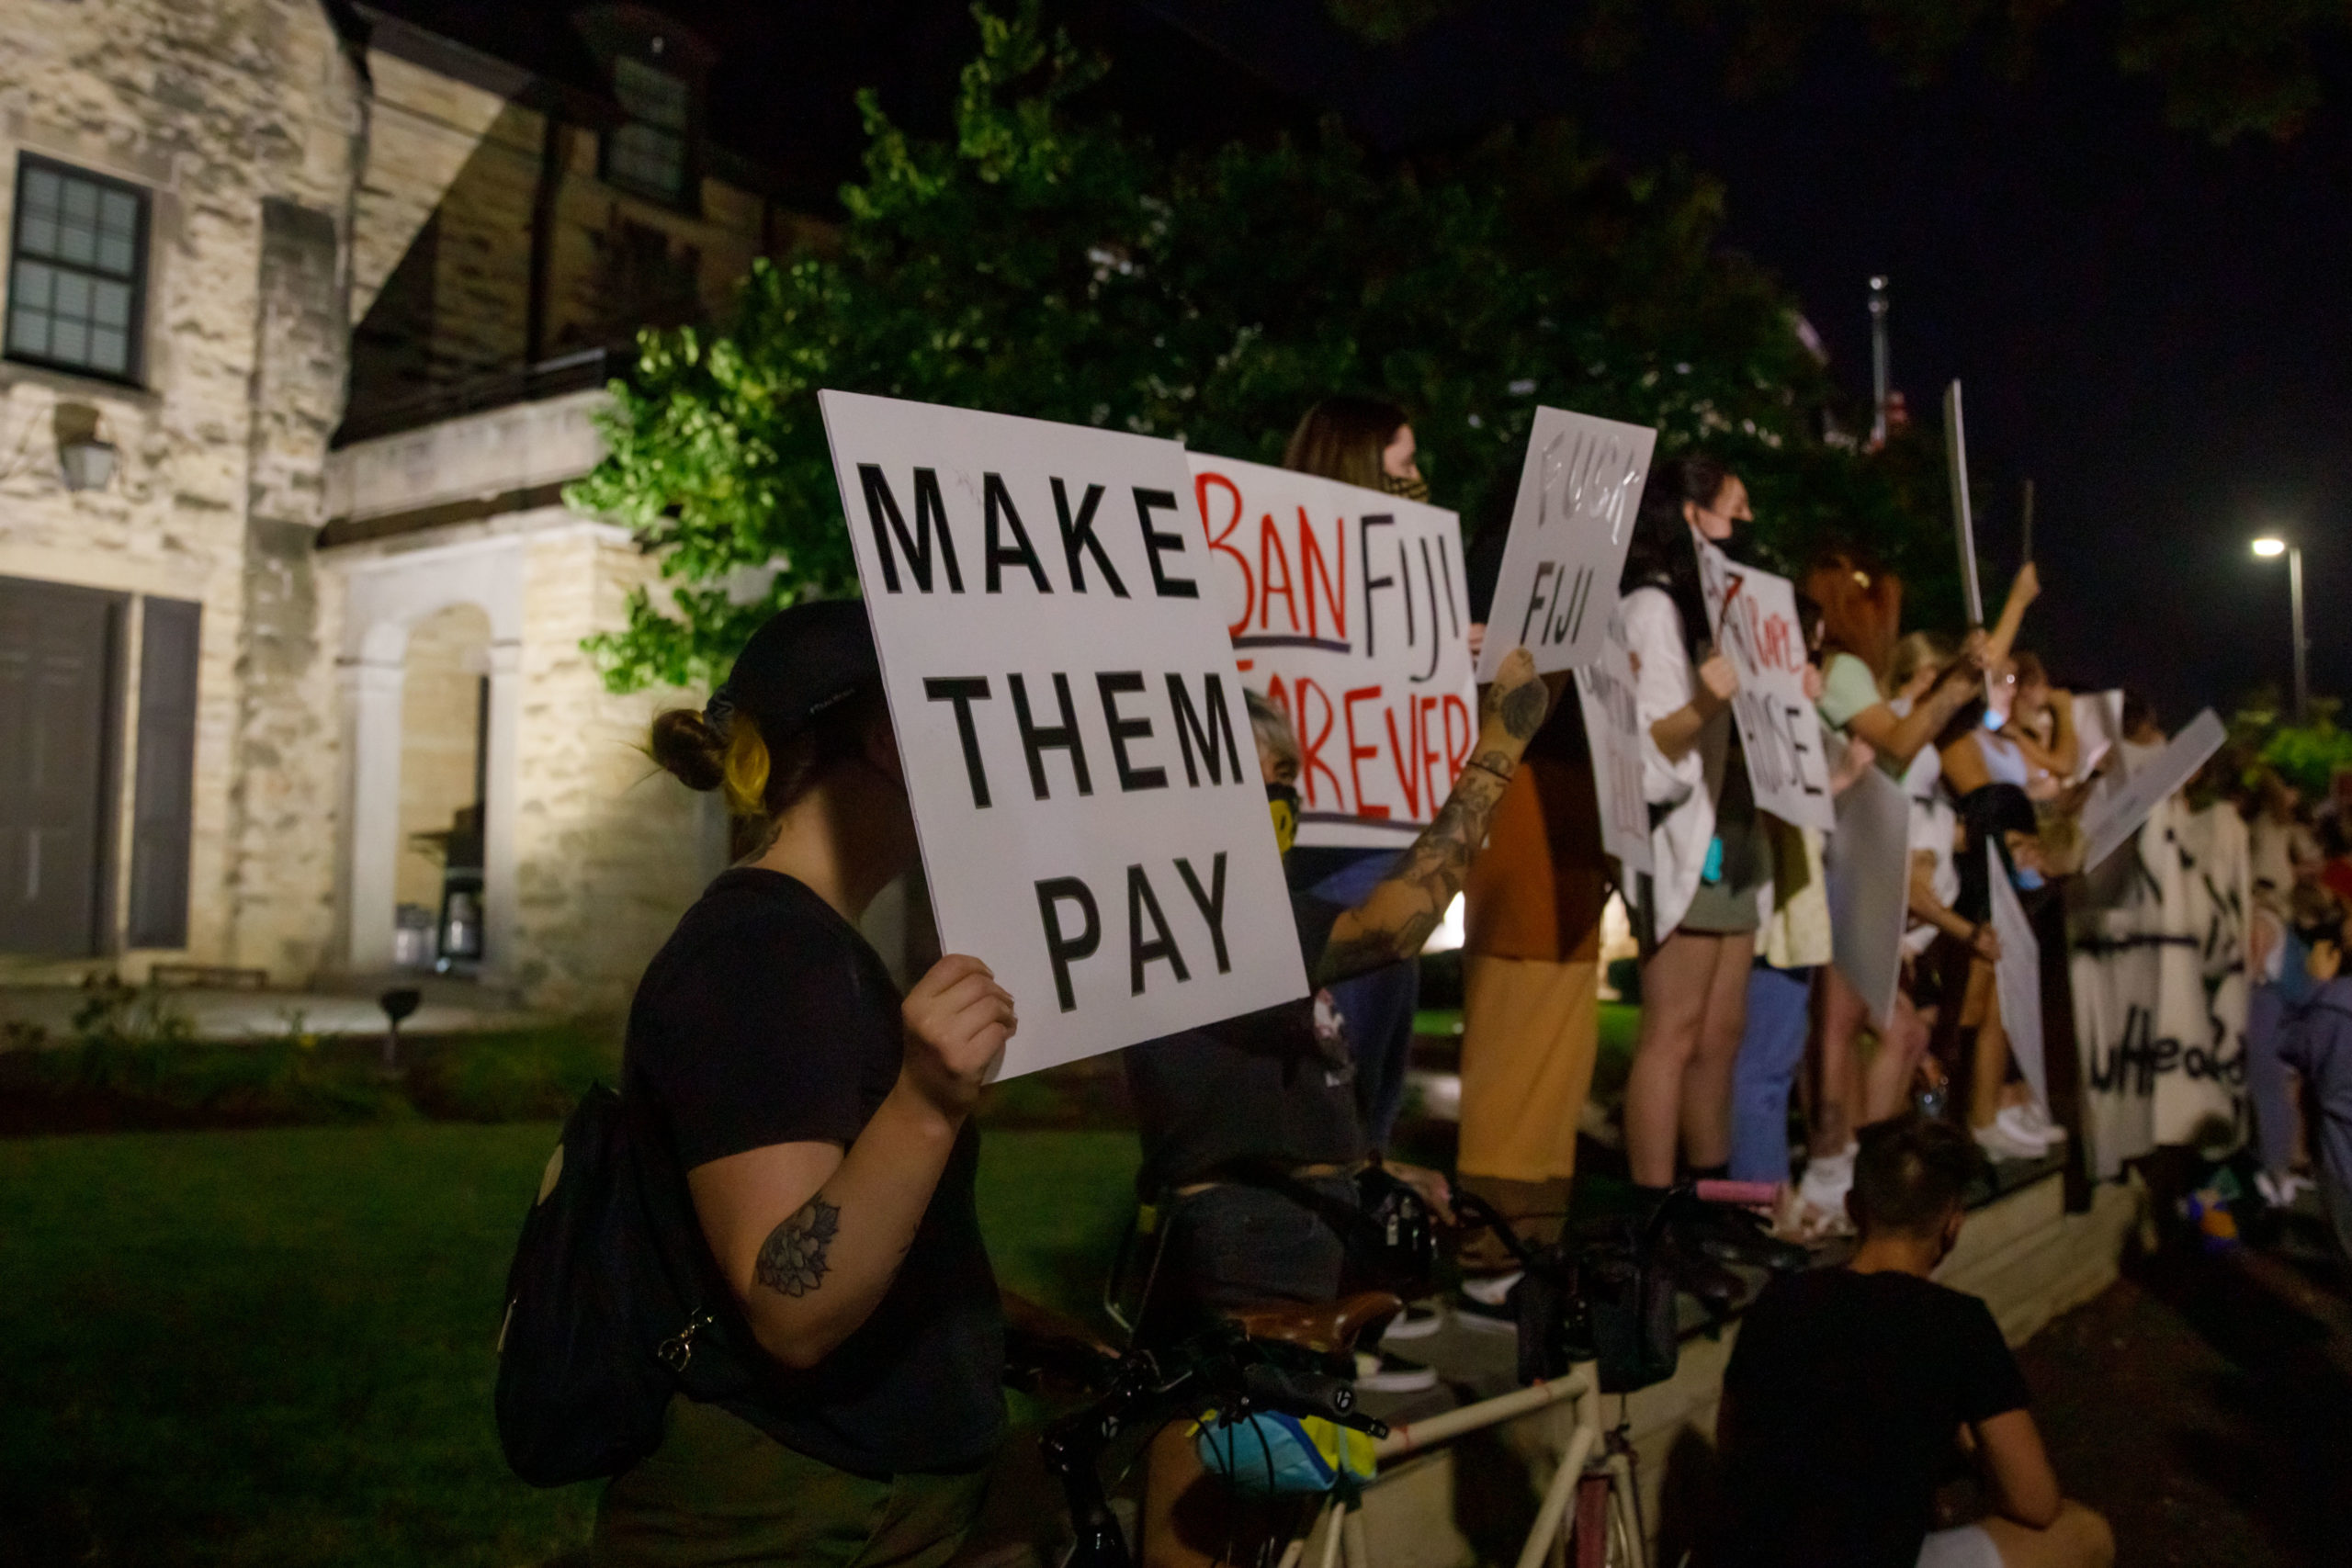 416A7020 scaled - Students protest outside of UNL fraternity house after reported sexual assault